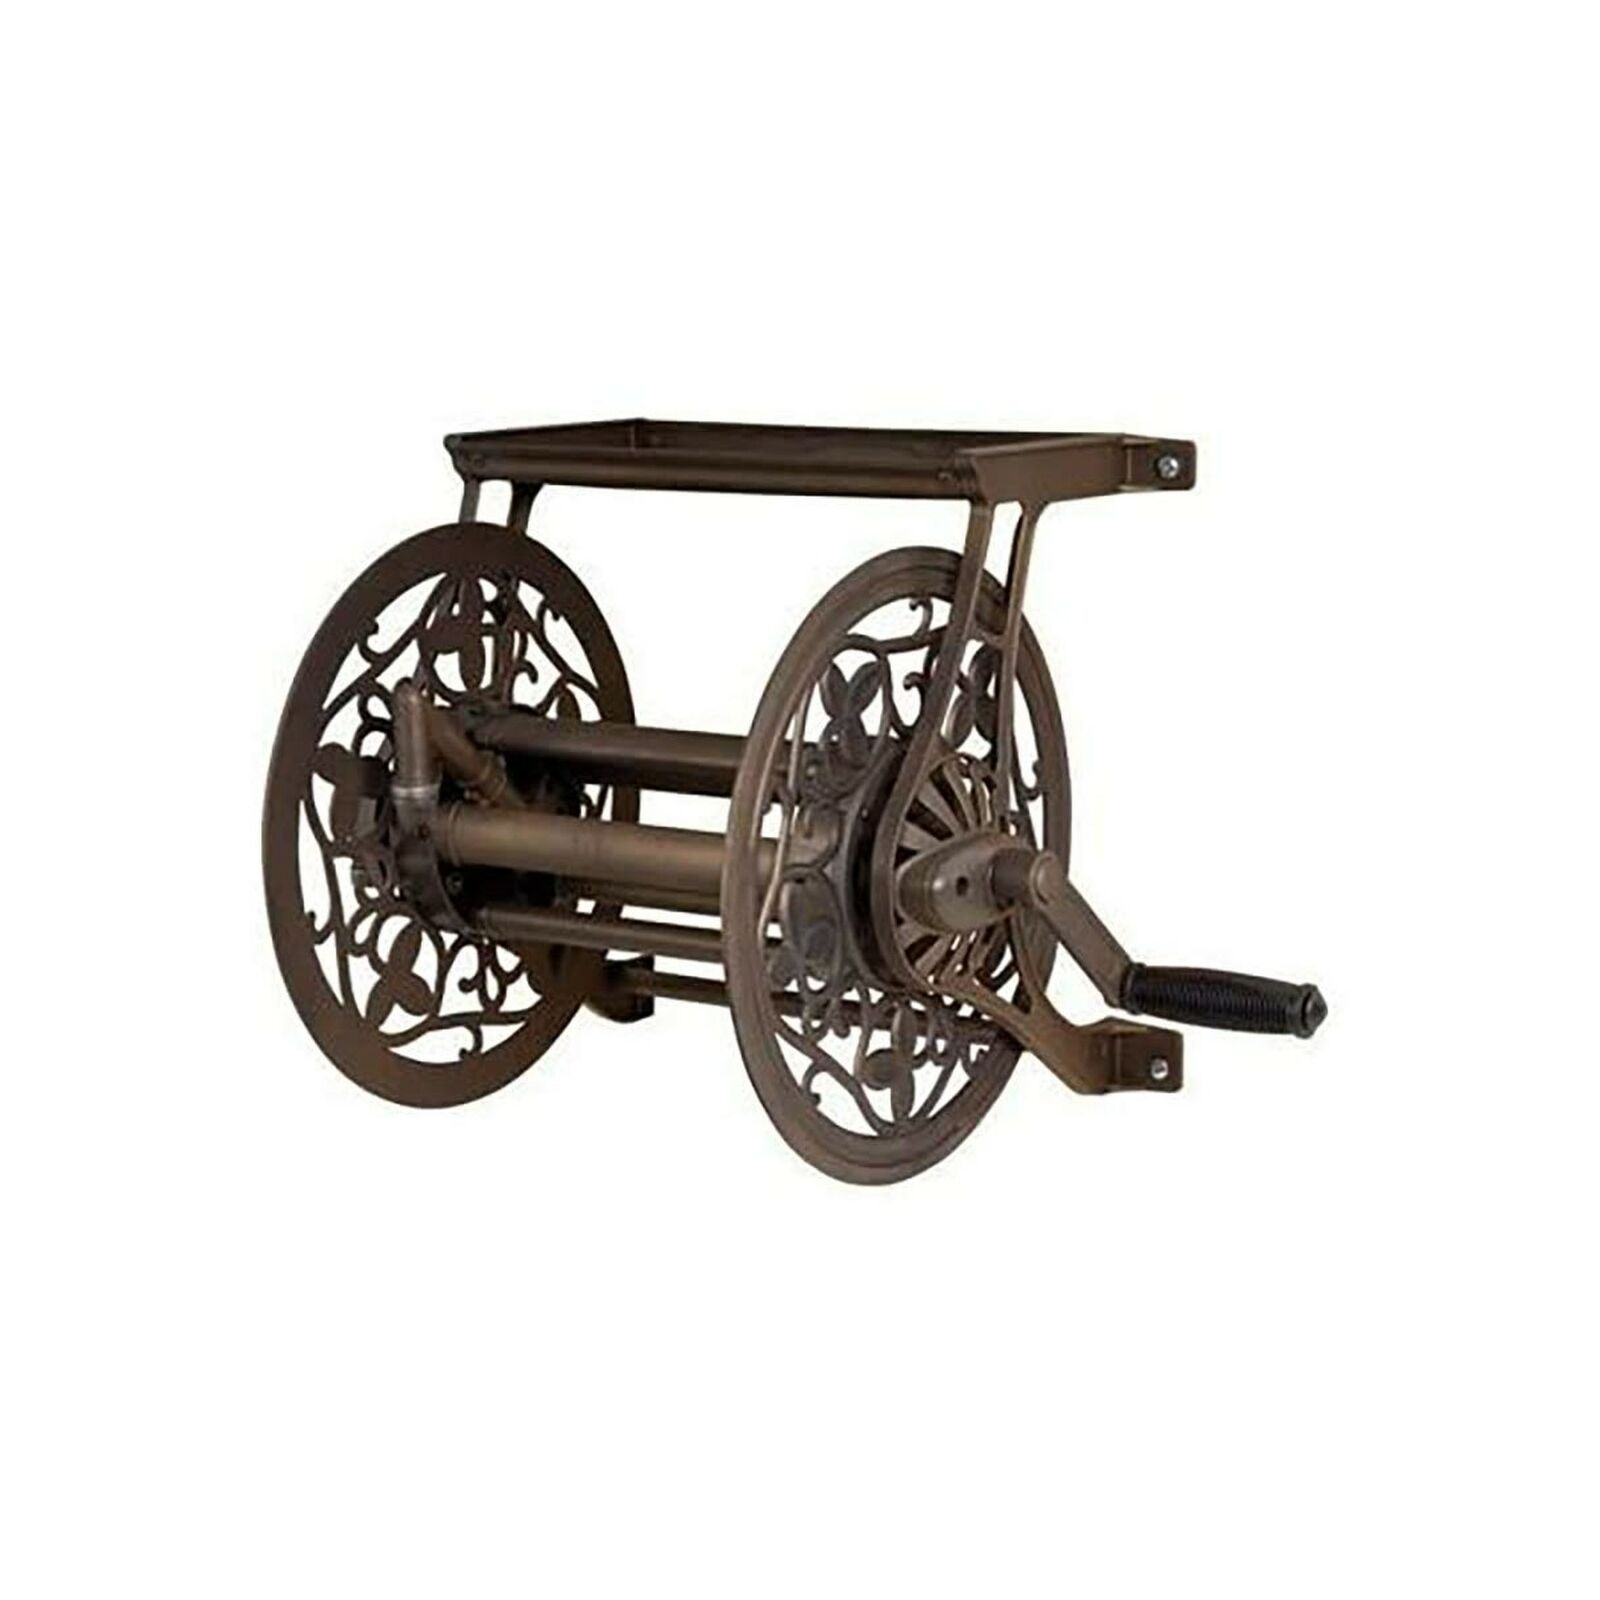 Ames 2398110 Outdoor Wall Mount Hose Reel 125 Foot Corrosion Resistant Metal New